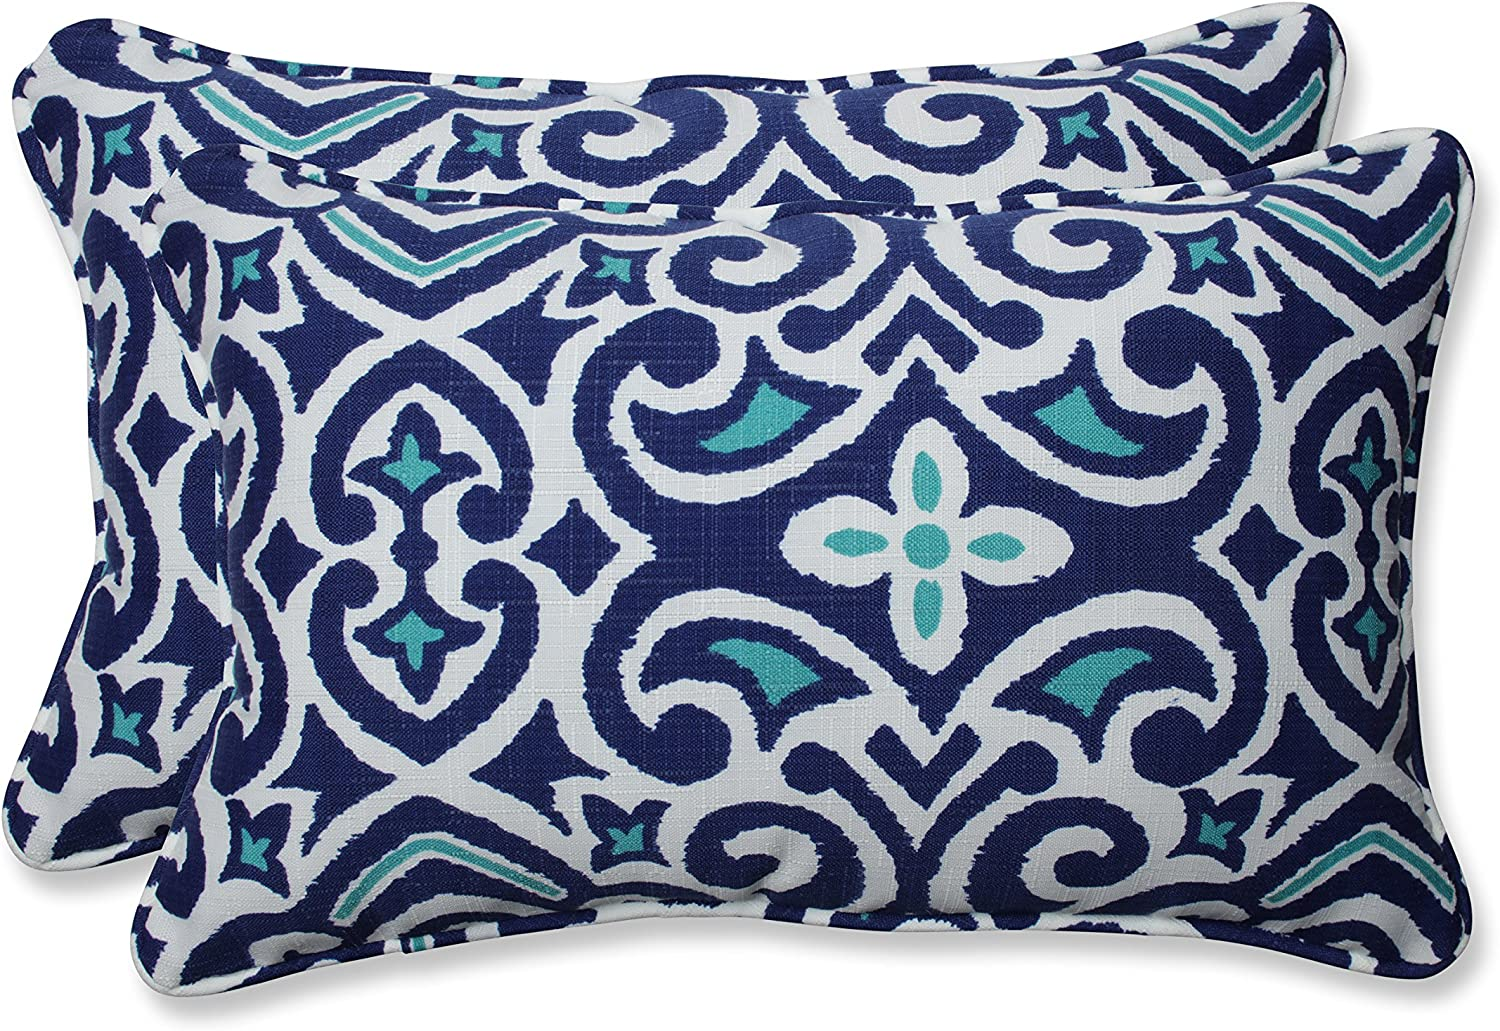 "Pillow Perfect Outdoor/Indoor New Damask Marine Lumbar Pillows, 11.5"" x 18.5"", Blue, 2 Count"